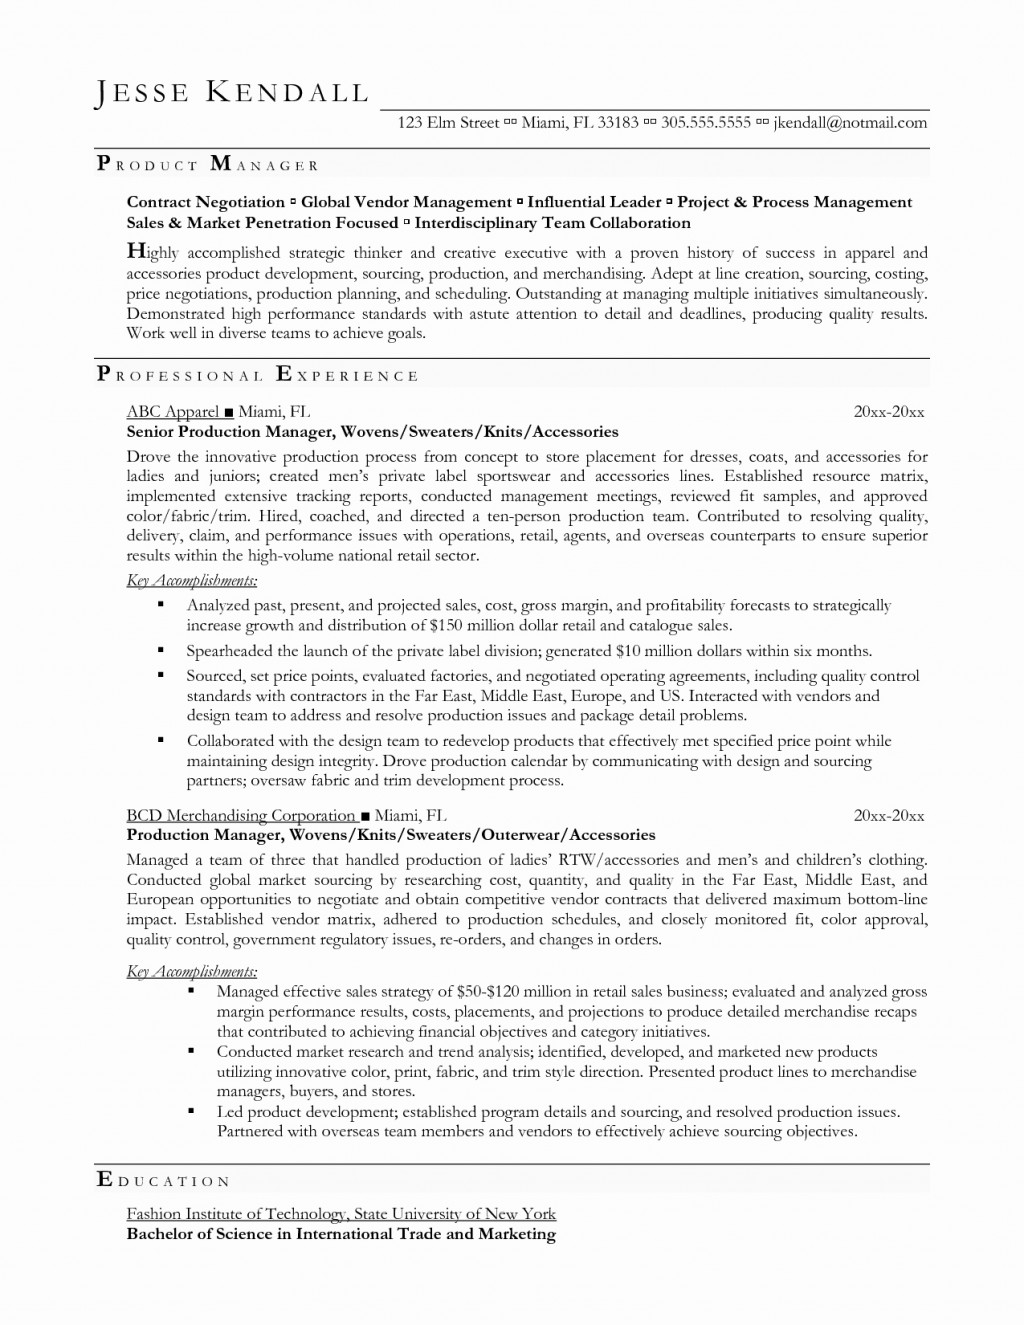 009 Bestay Writing Service Reddit Example Production Supervisor Resume Format Of Grant Writer Cover Letter Beautiful Best Essay 2018 Uk Large